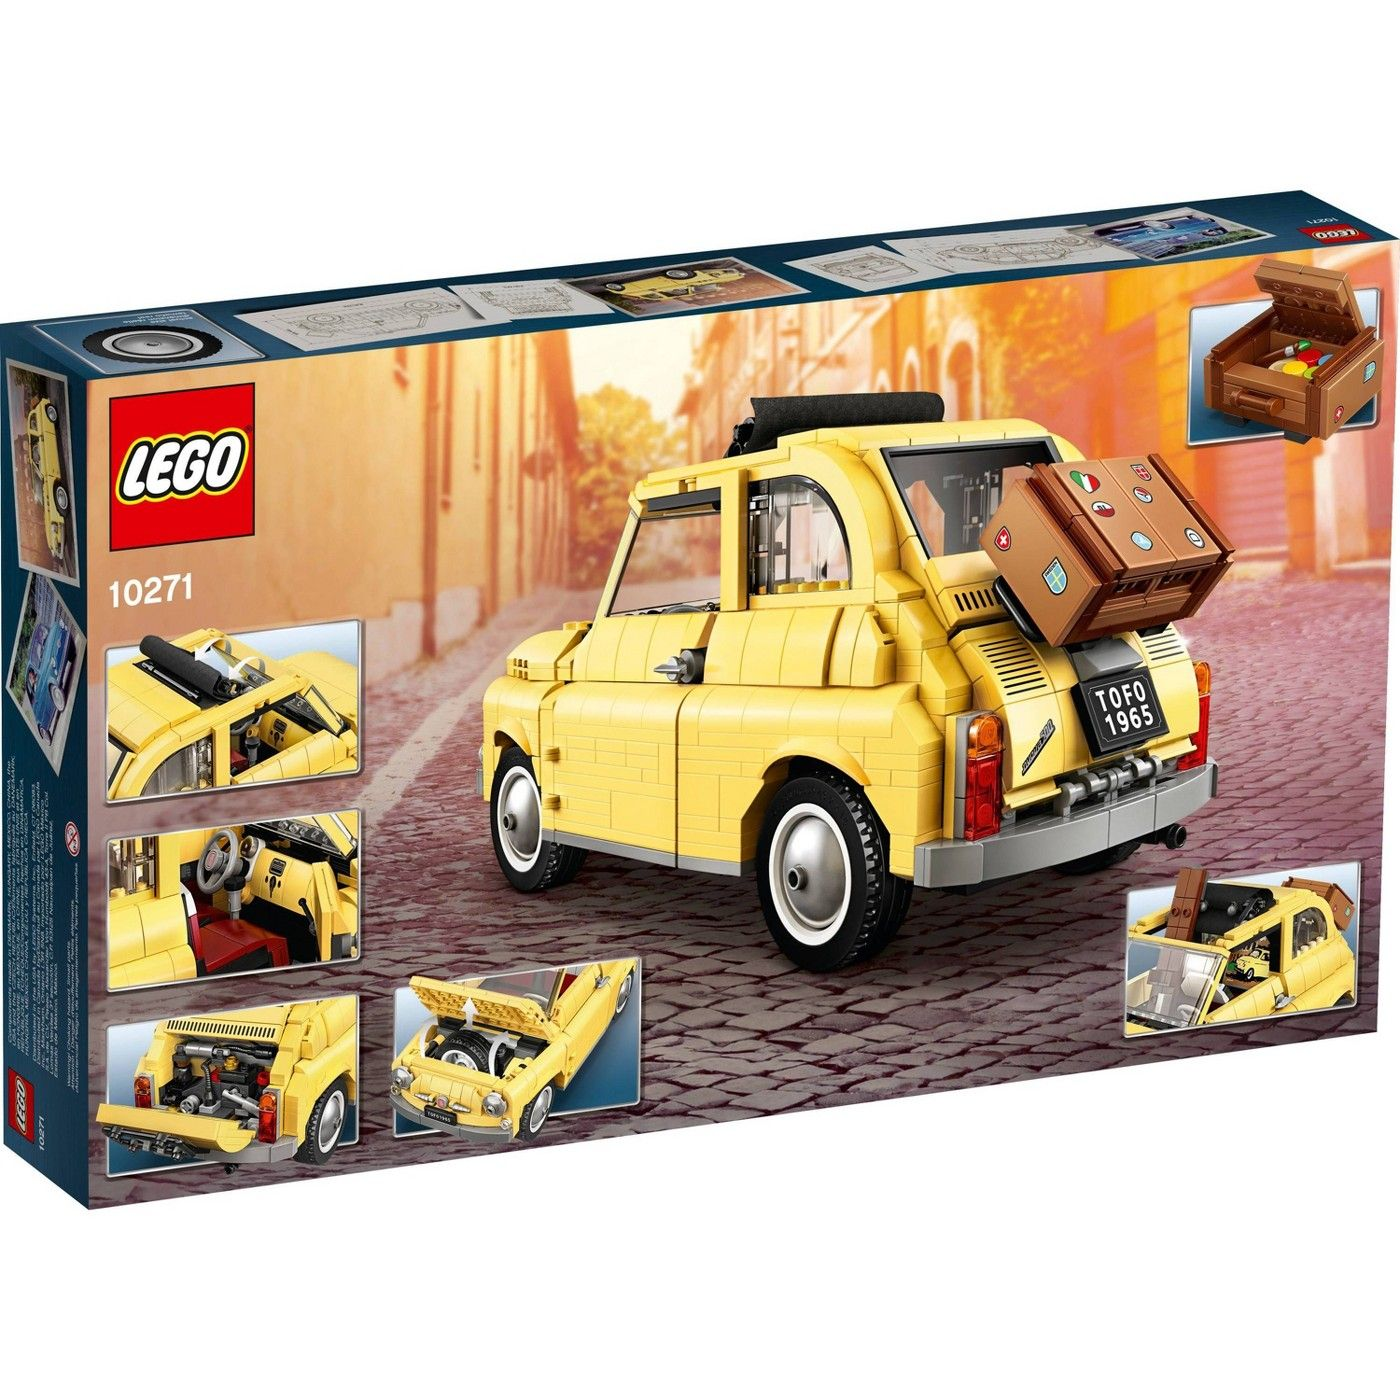 Lego Creator Expert Fiat 500 Toy Car Building Set For Adults Who Love Model Kits 10271 Fiat 500 Lego Creator Toy Car